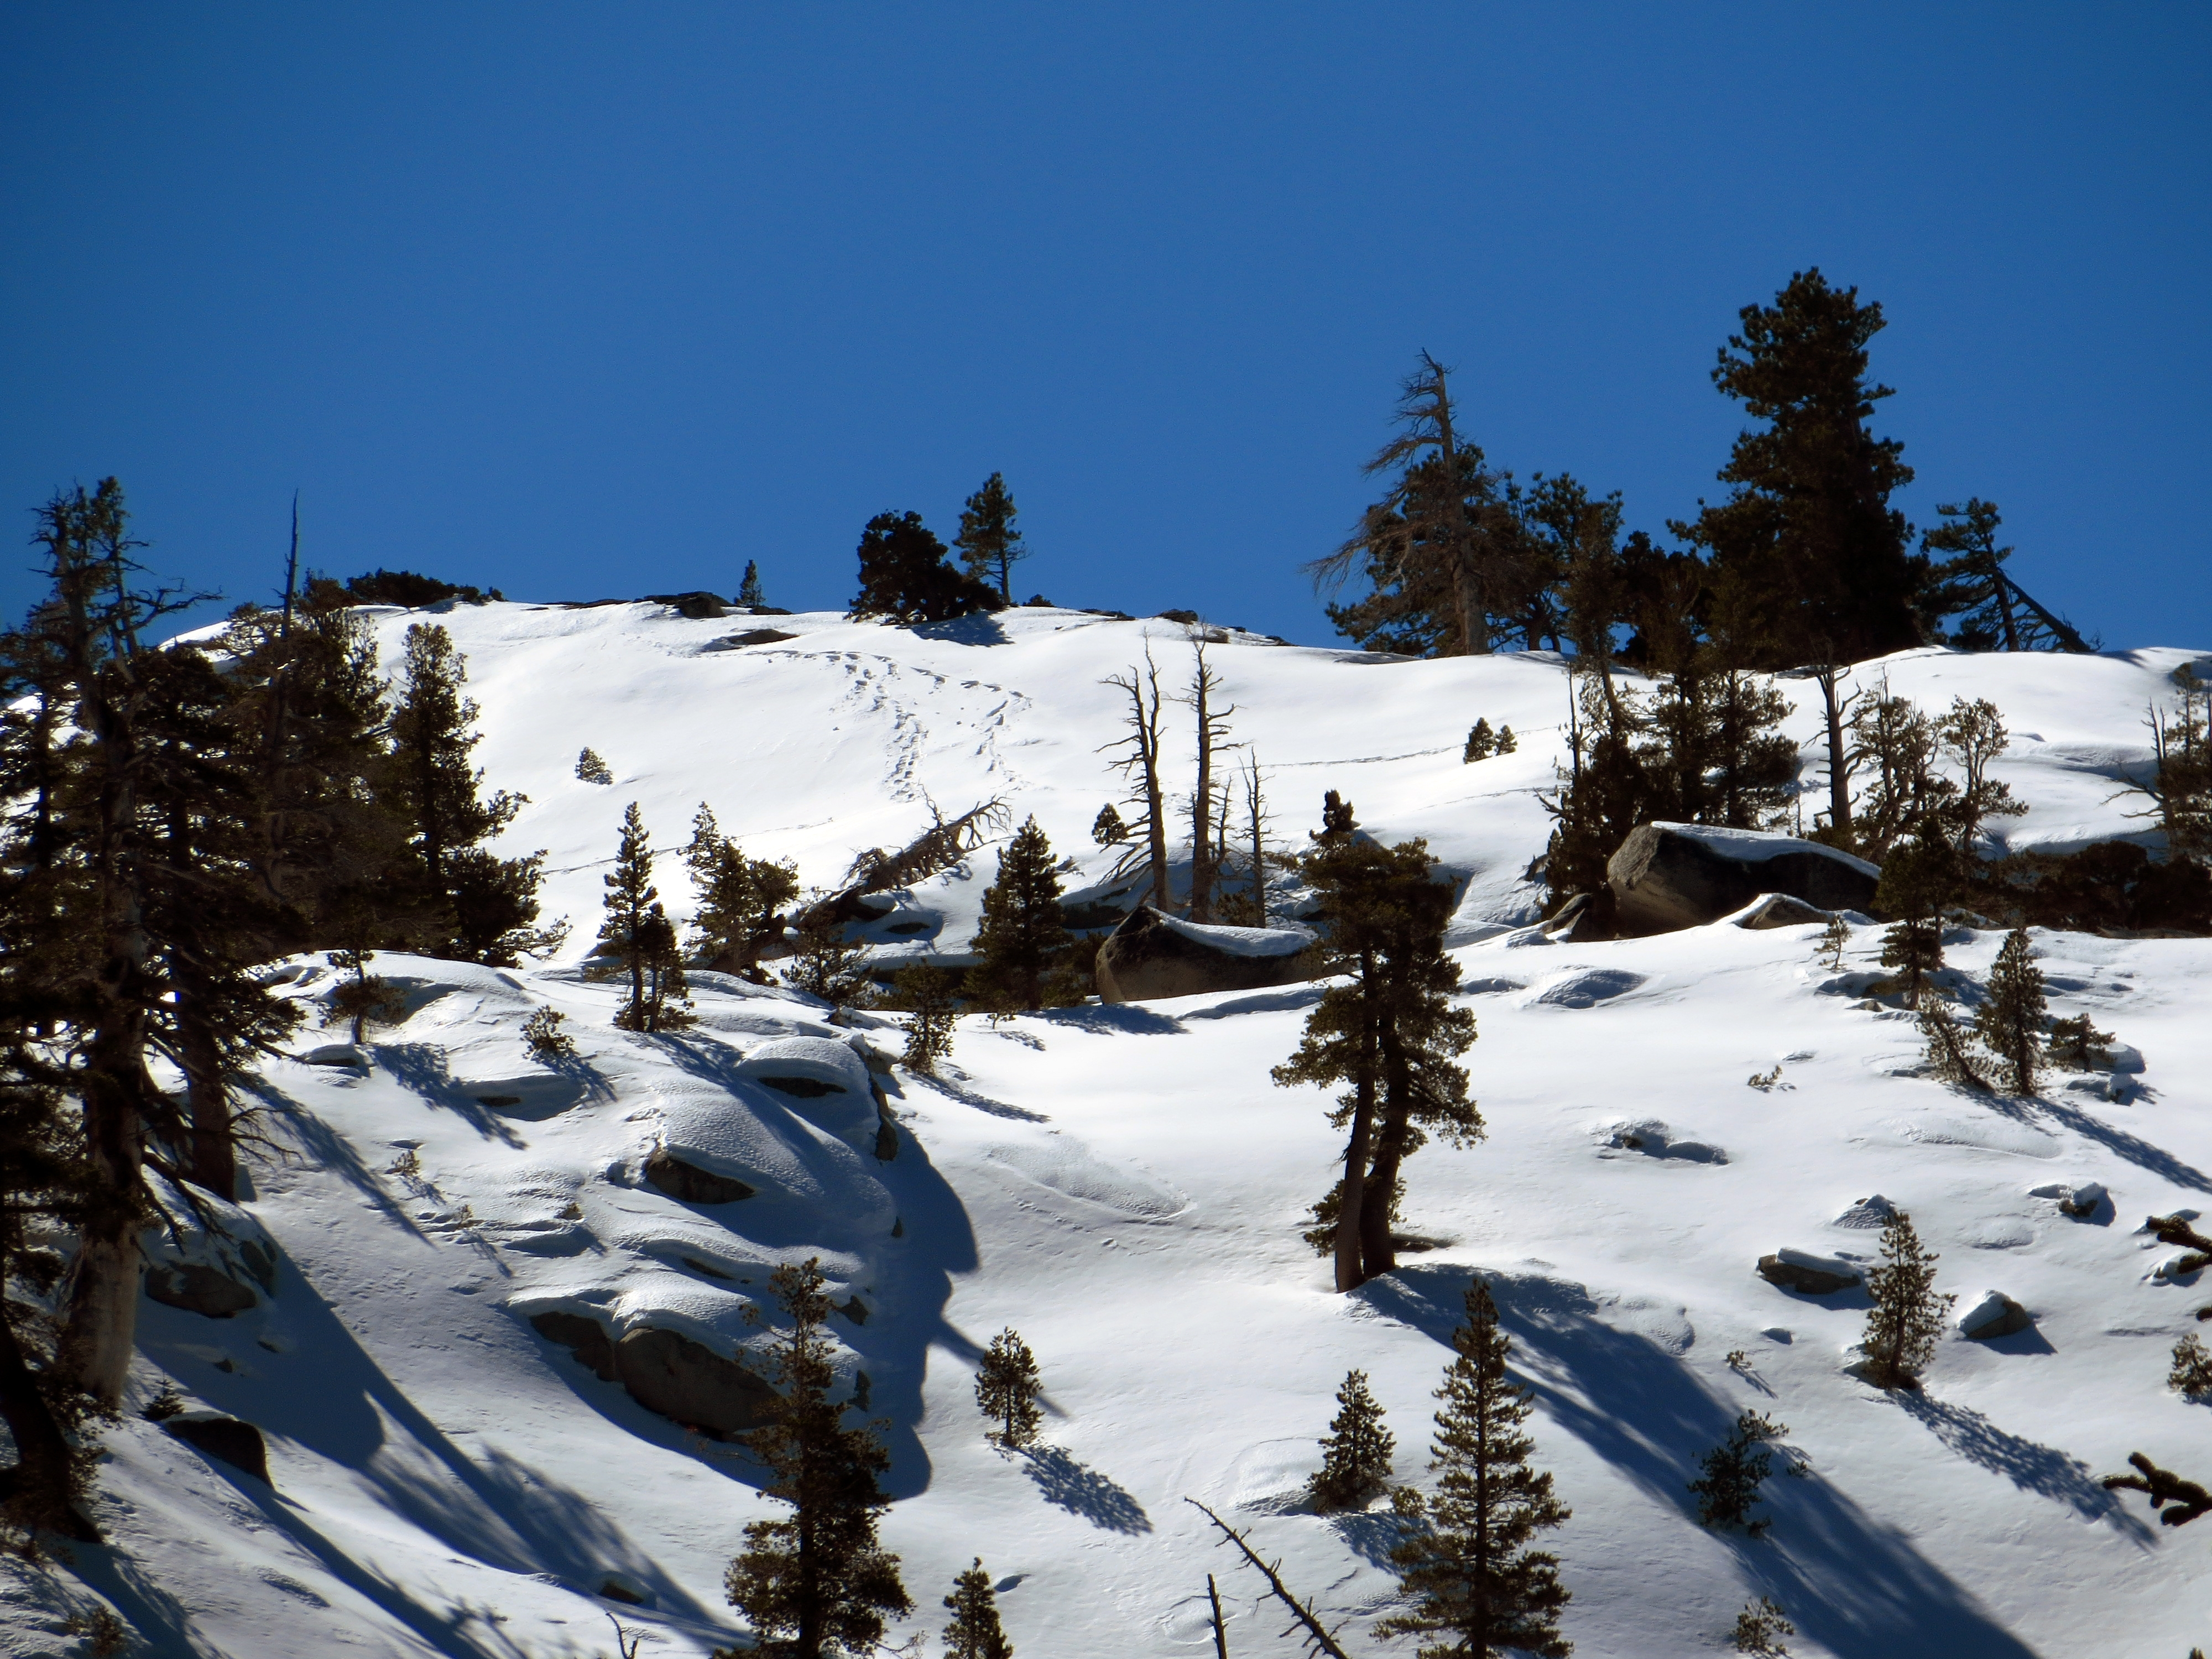 Our previous day's tracks are visible higher up on the mountainside.  (photo by D. Speredelozzi)